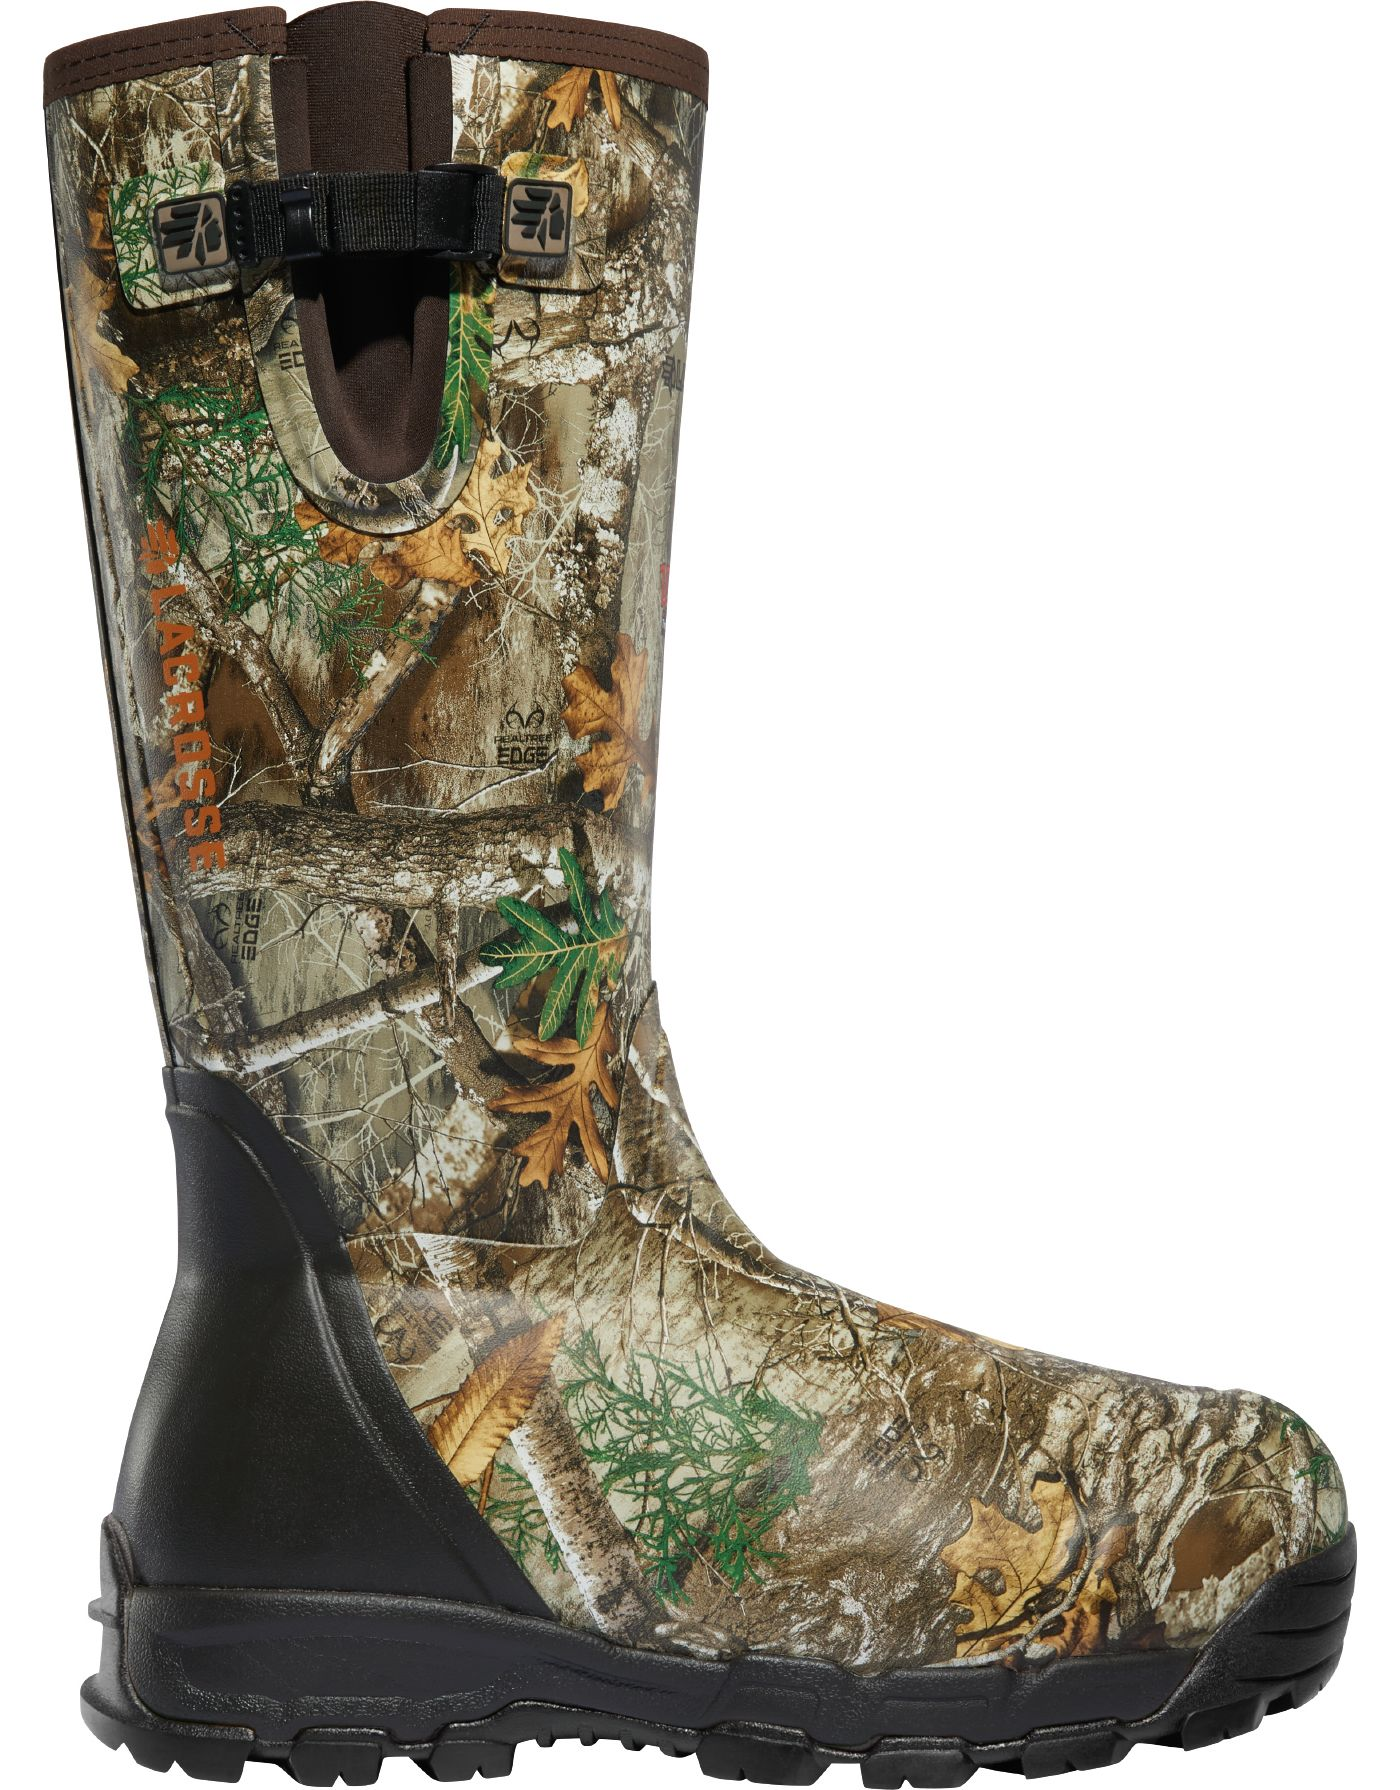 LaCrosse Men's Alphaburly Pro Side-Zip 18'' Realtree Edge 1000g Rubber Hunting Boots